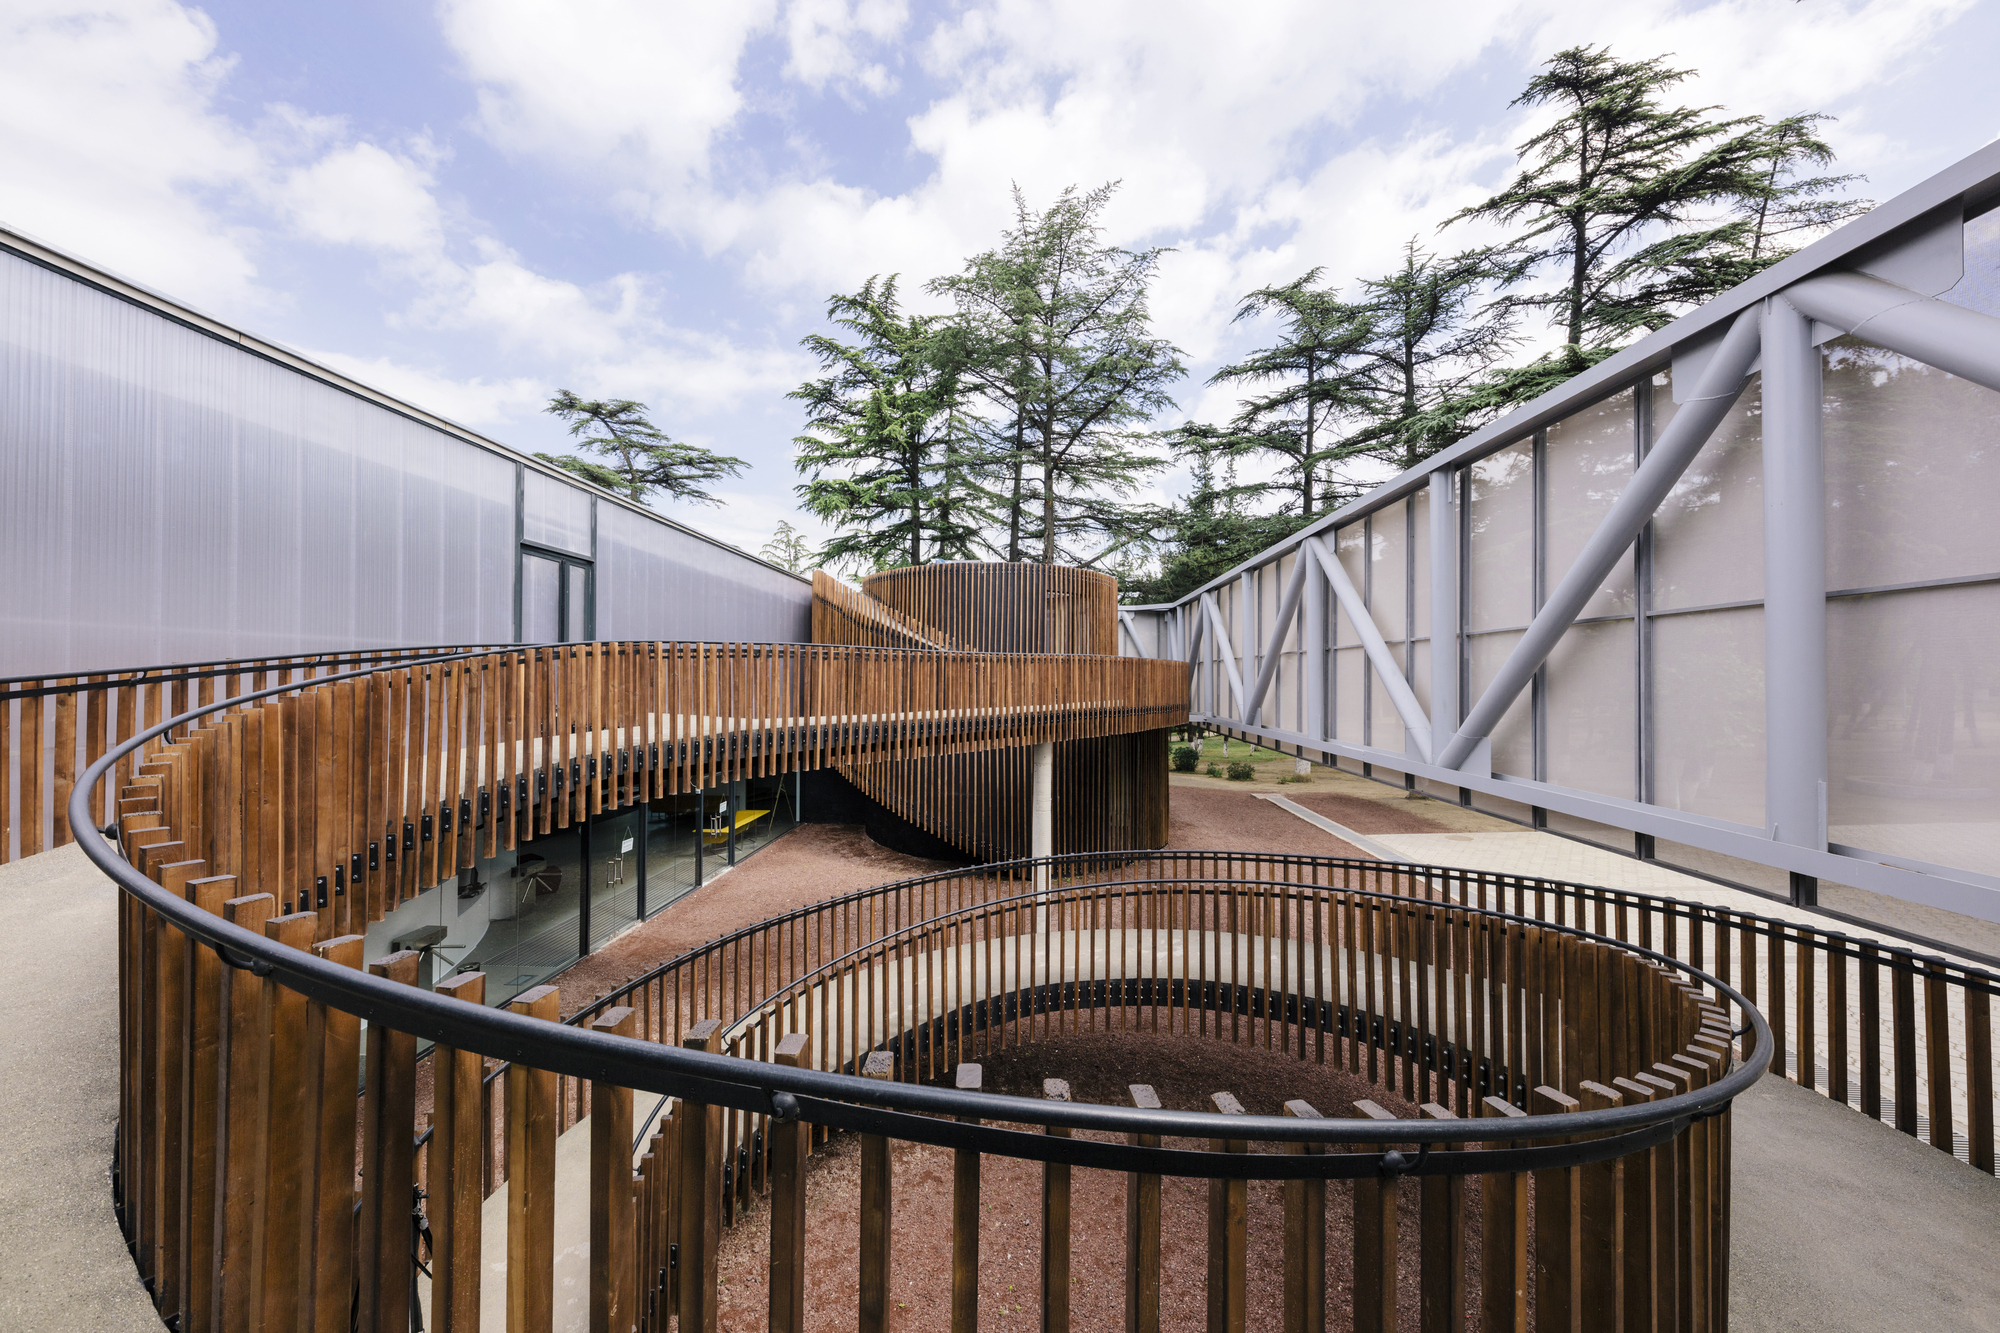 Arquitecture mediathek / laboratory of architecture #3 | archdaily